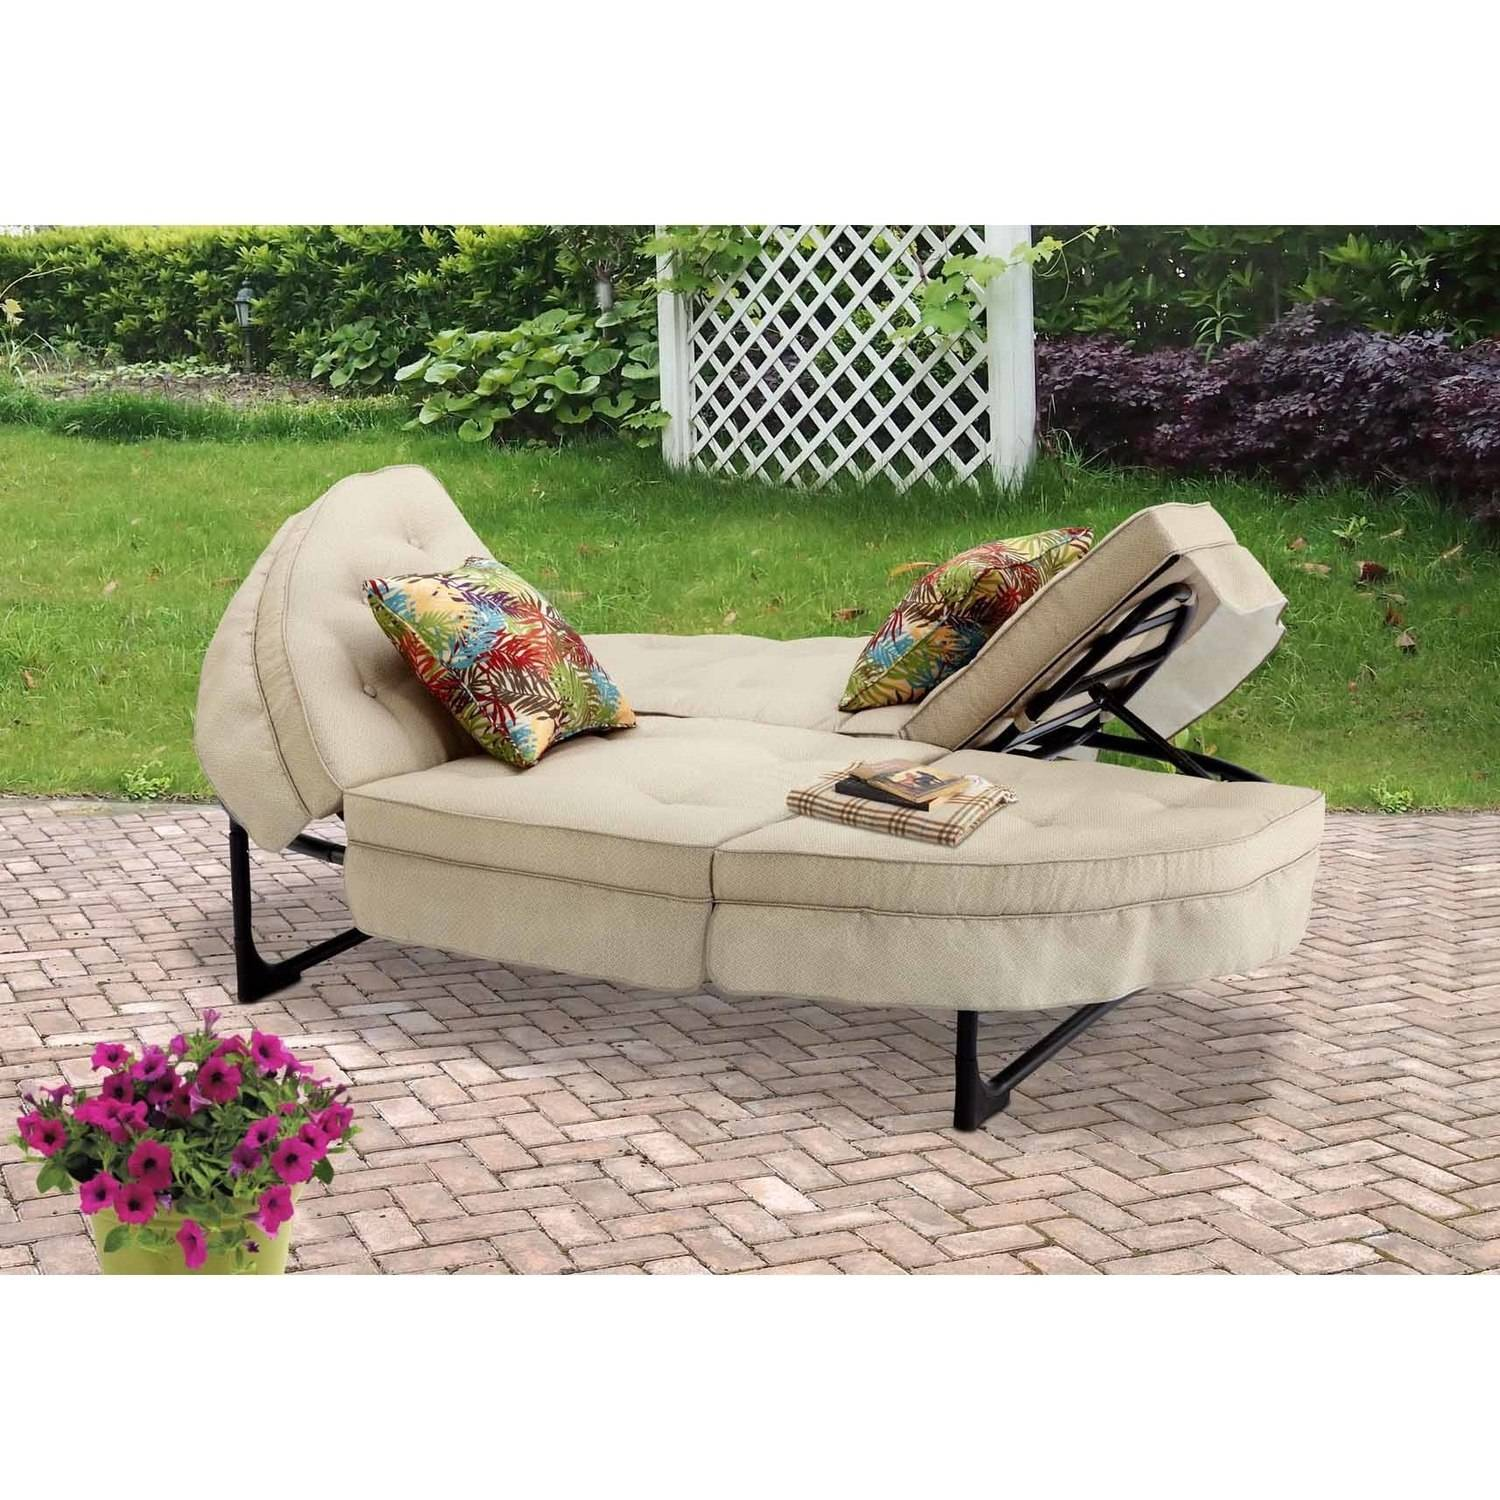 Mainstays Orbit Chaise Lounger, Tan, Seats 2